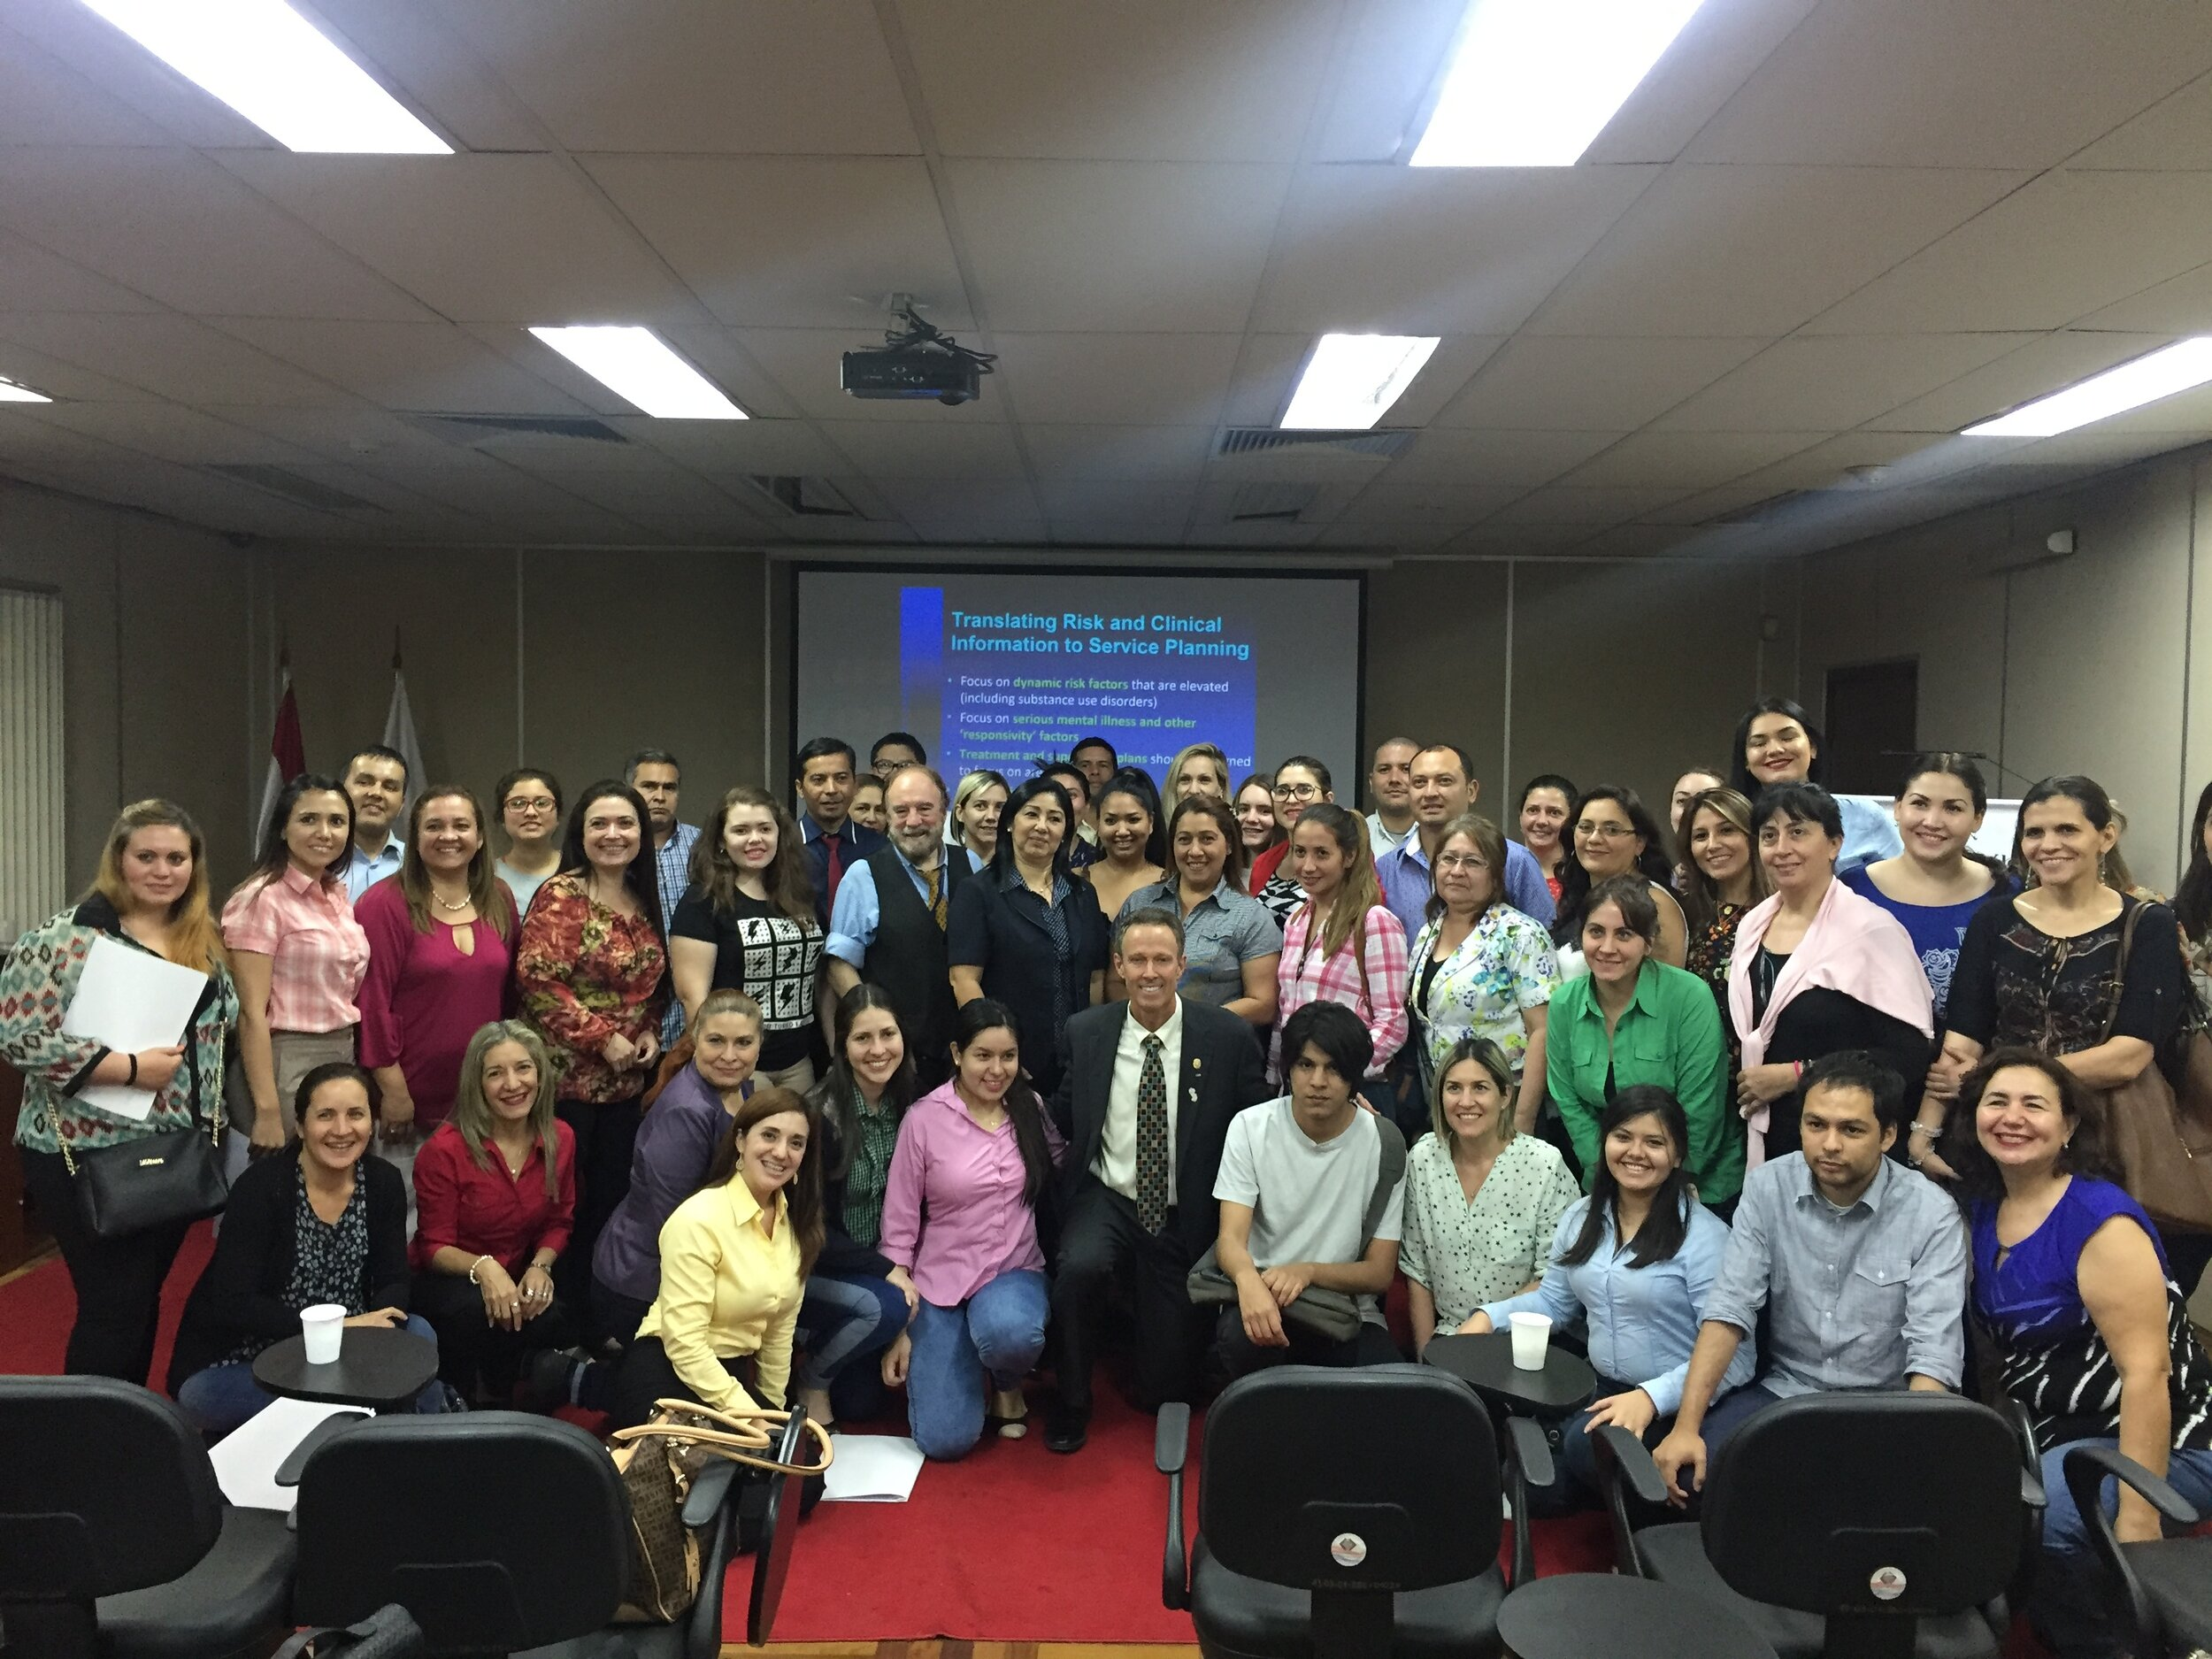 Peters (first row, center) poses with participants after a successful workshop.